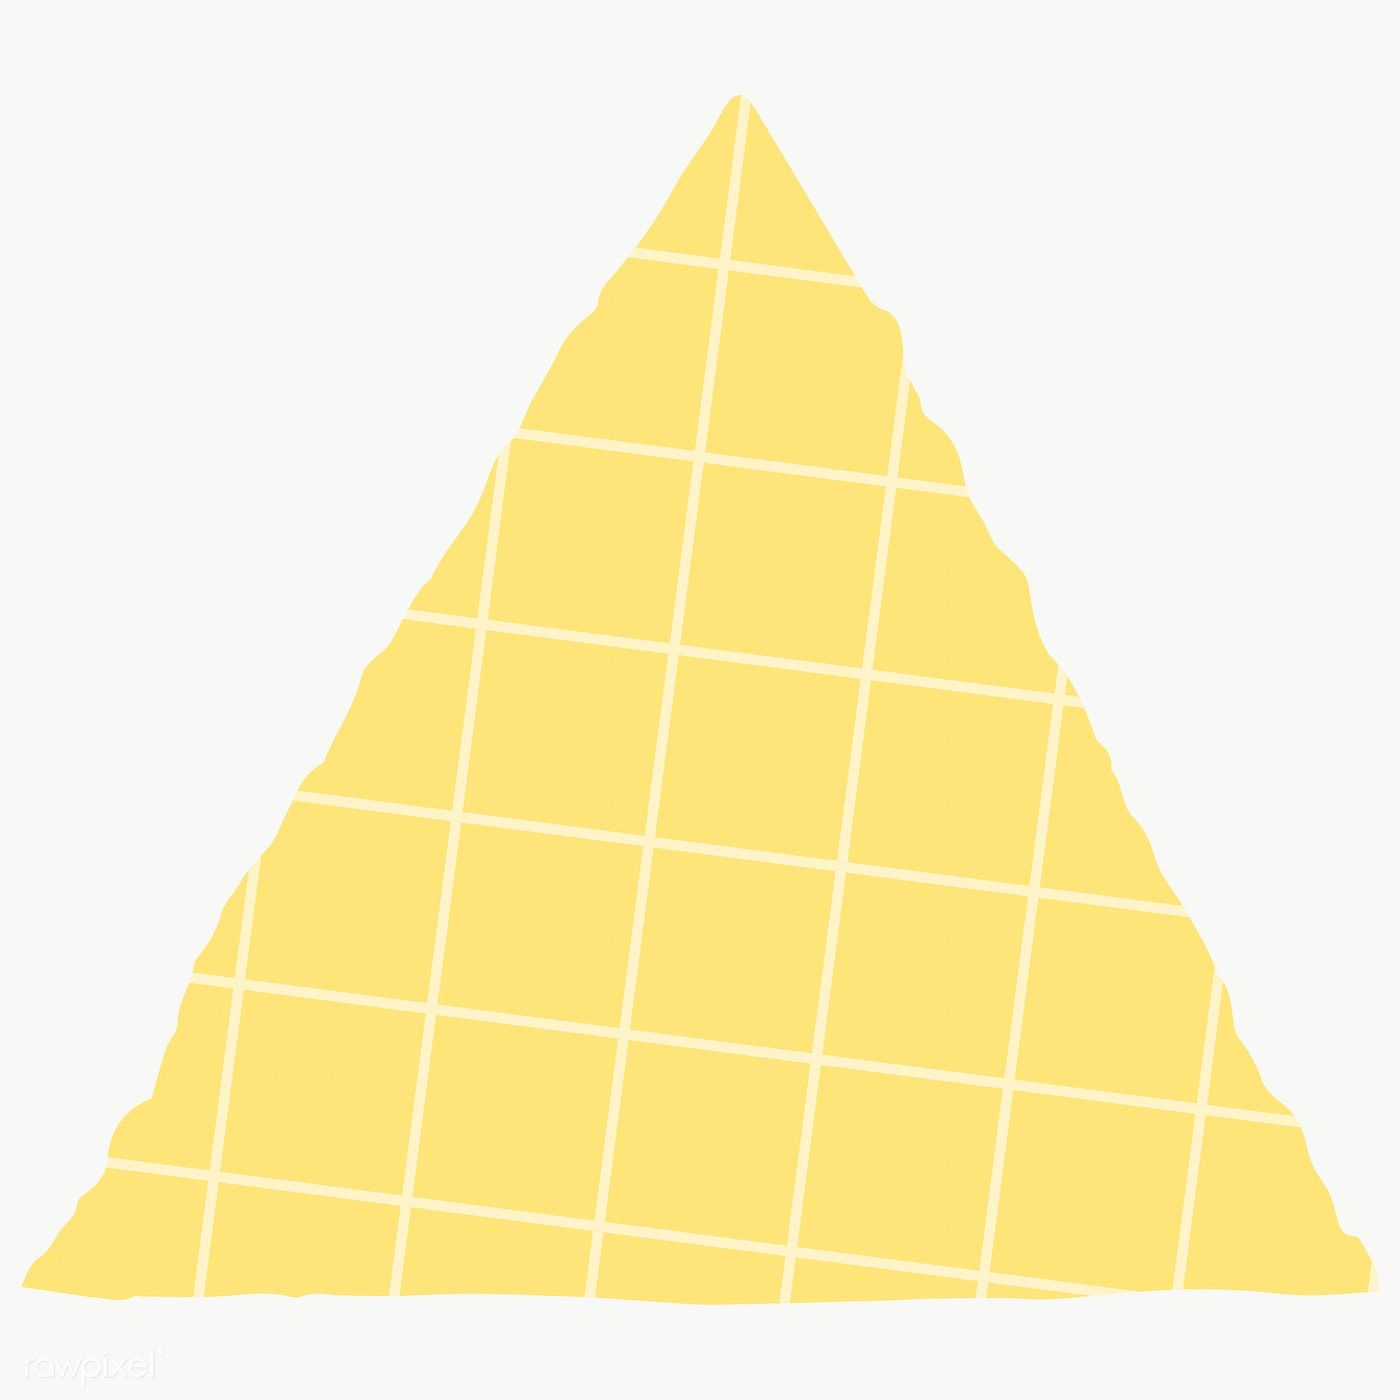 Blank Yellow Triangle Paper Note Social Ads Template Illustration Free Image By Rawpixel Com Manotang Note Paper Sticky Notes Collection Social Ads